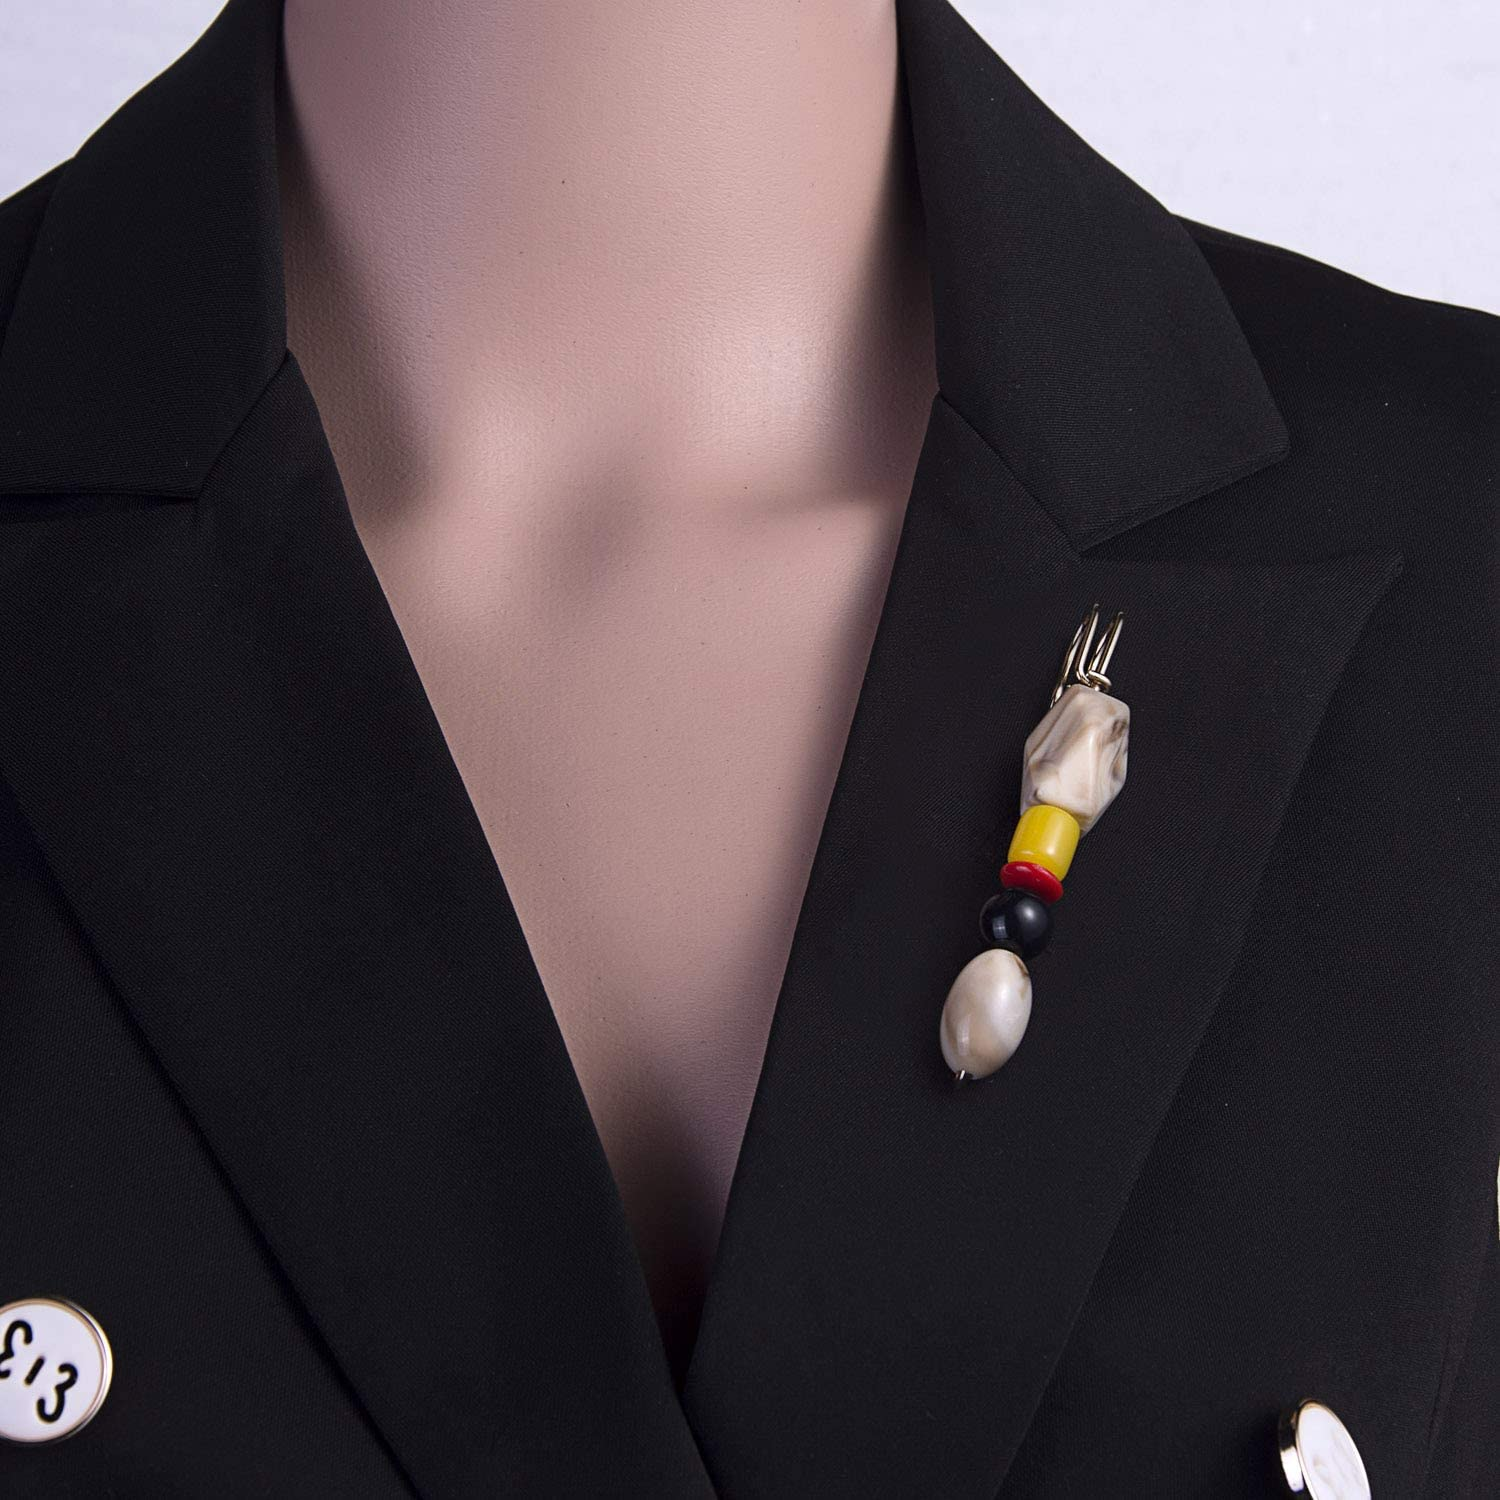 RINHOO FRIENDSHIP Pearl Crystal Brooches Pins Beads Safety Clips Coat Hat Shawl Silk Scarf Dress Sweater Knitted Jewelry for Women Girls